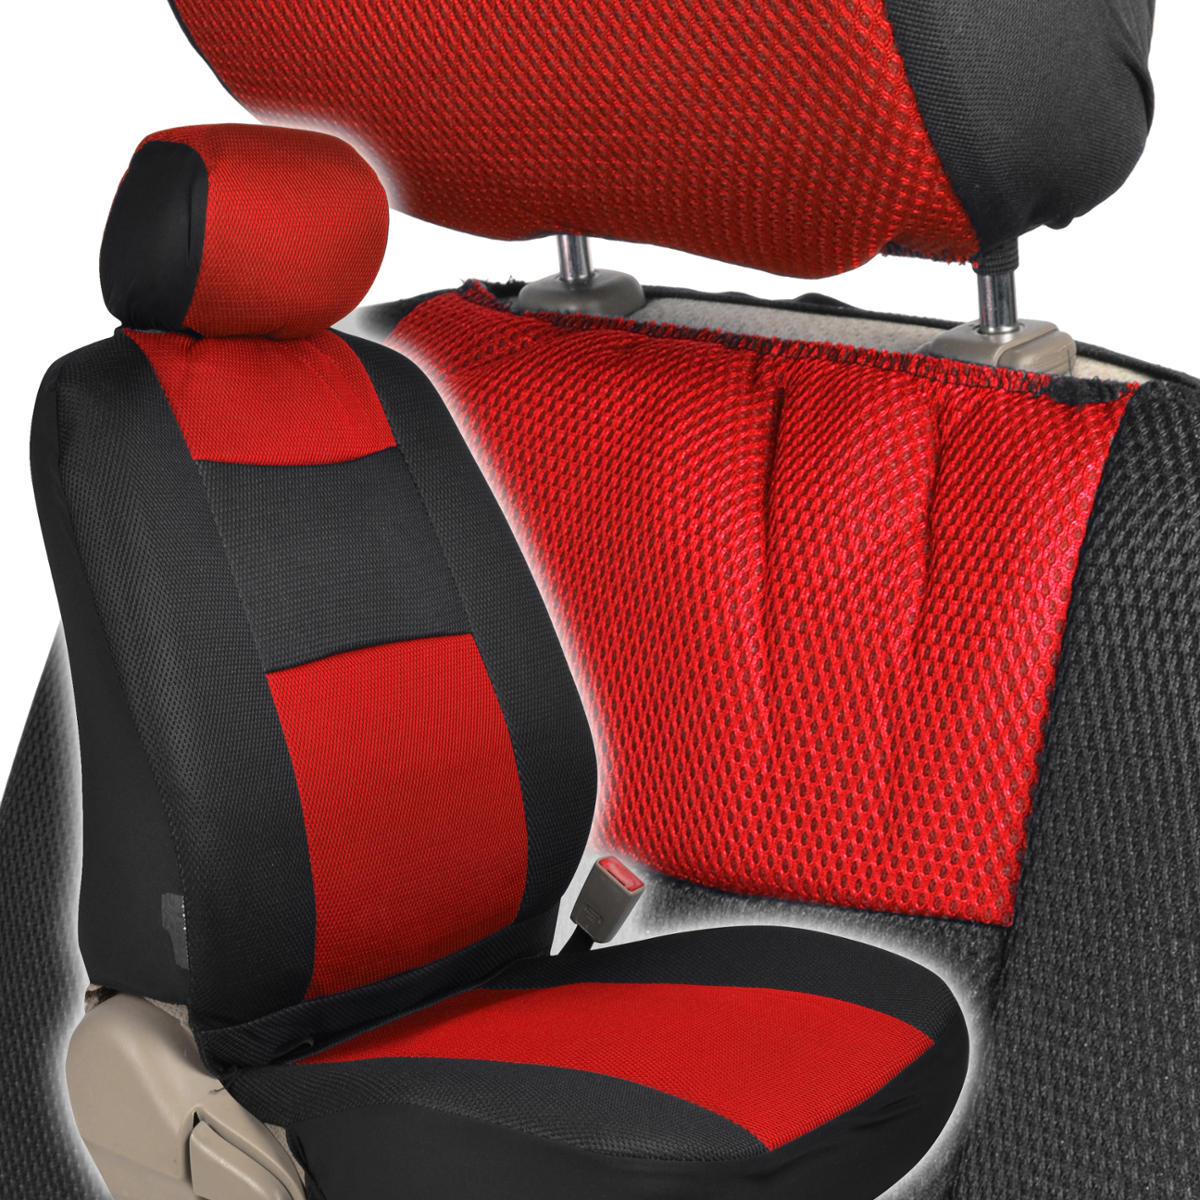 Seat Covers Black And Red Mesh Cloth Polyester 2 Color